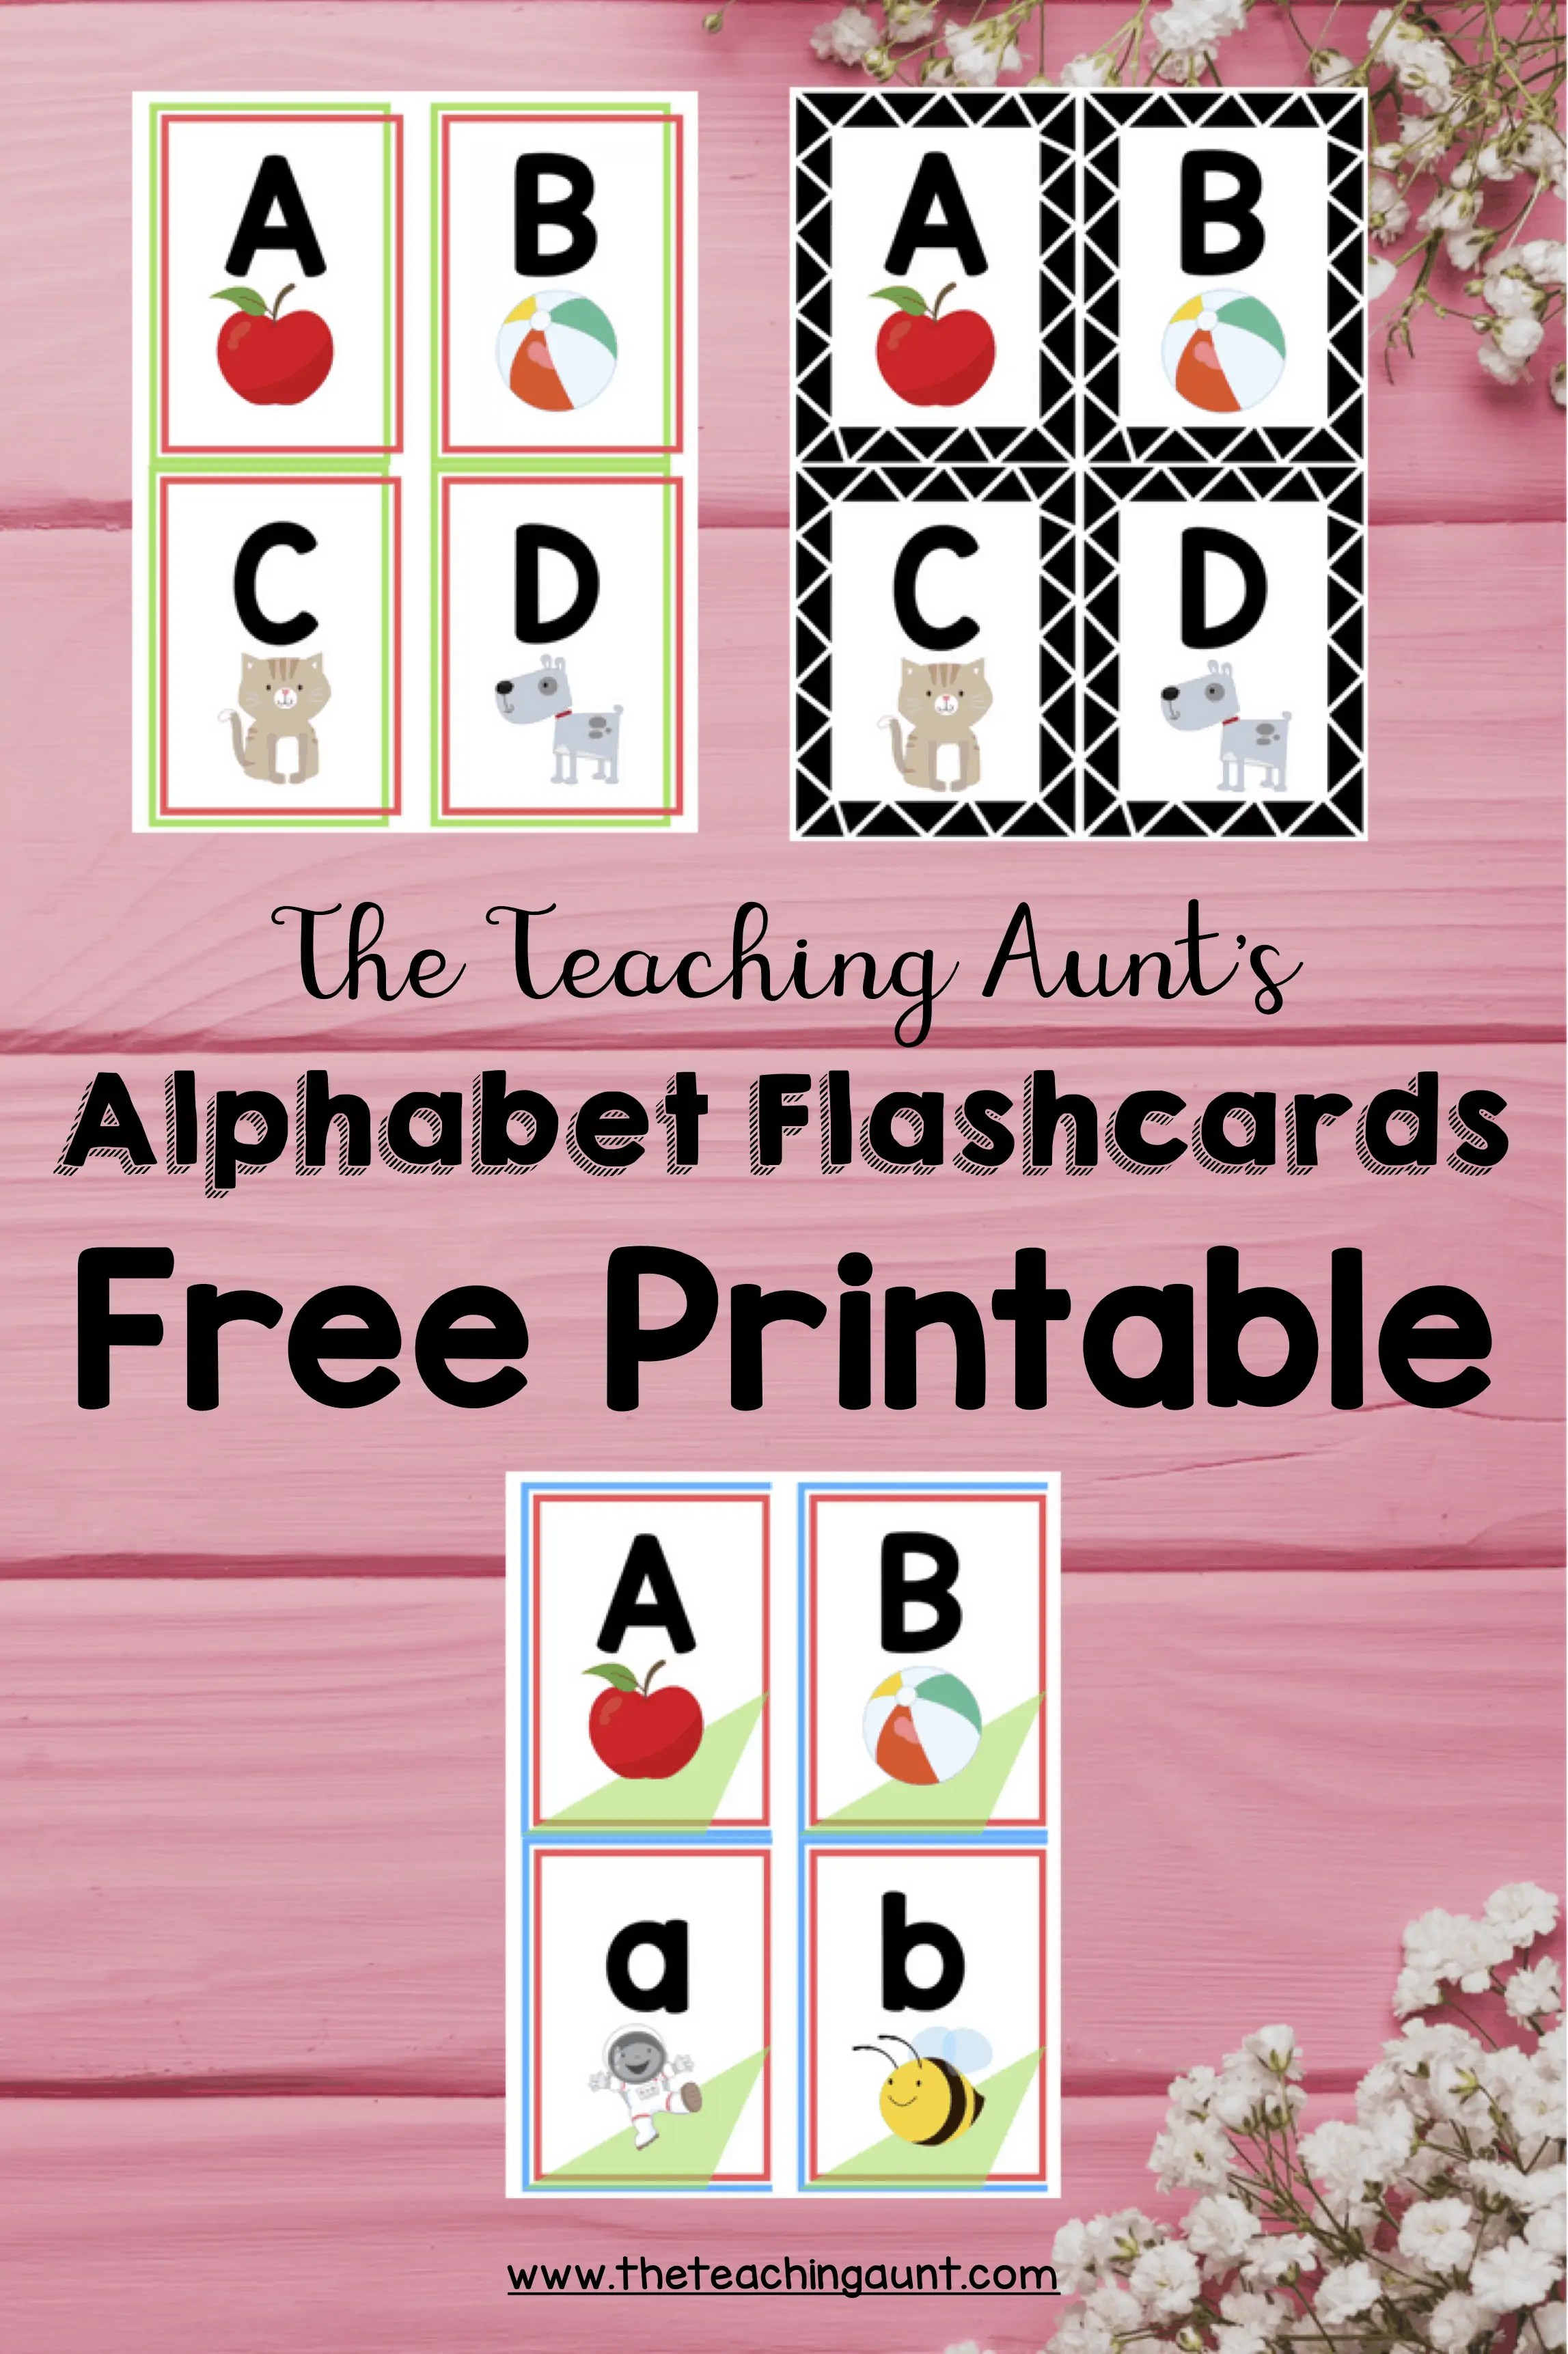 photograph relating to Number Flash Cards Printable named Alphabet Flashcards Absolutely free Printable - The Coaching Aunt